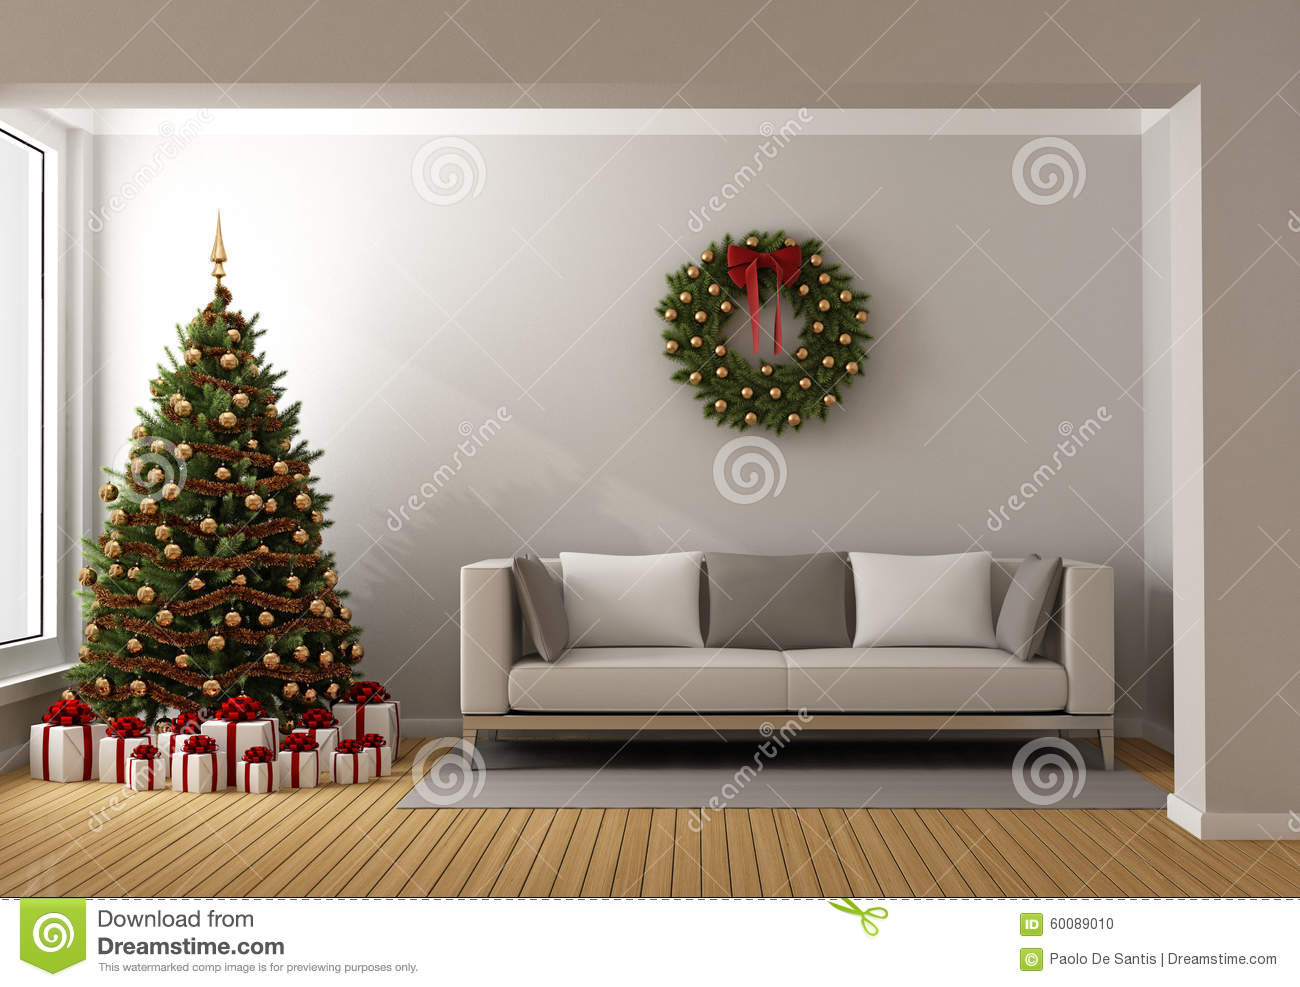 Christmas Tree Living Room living room with christmas tree stock illustration - image: 60089010